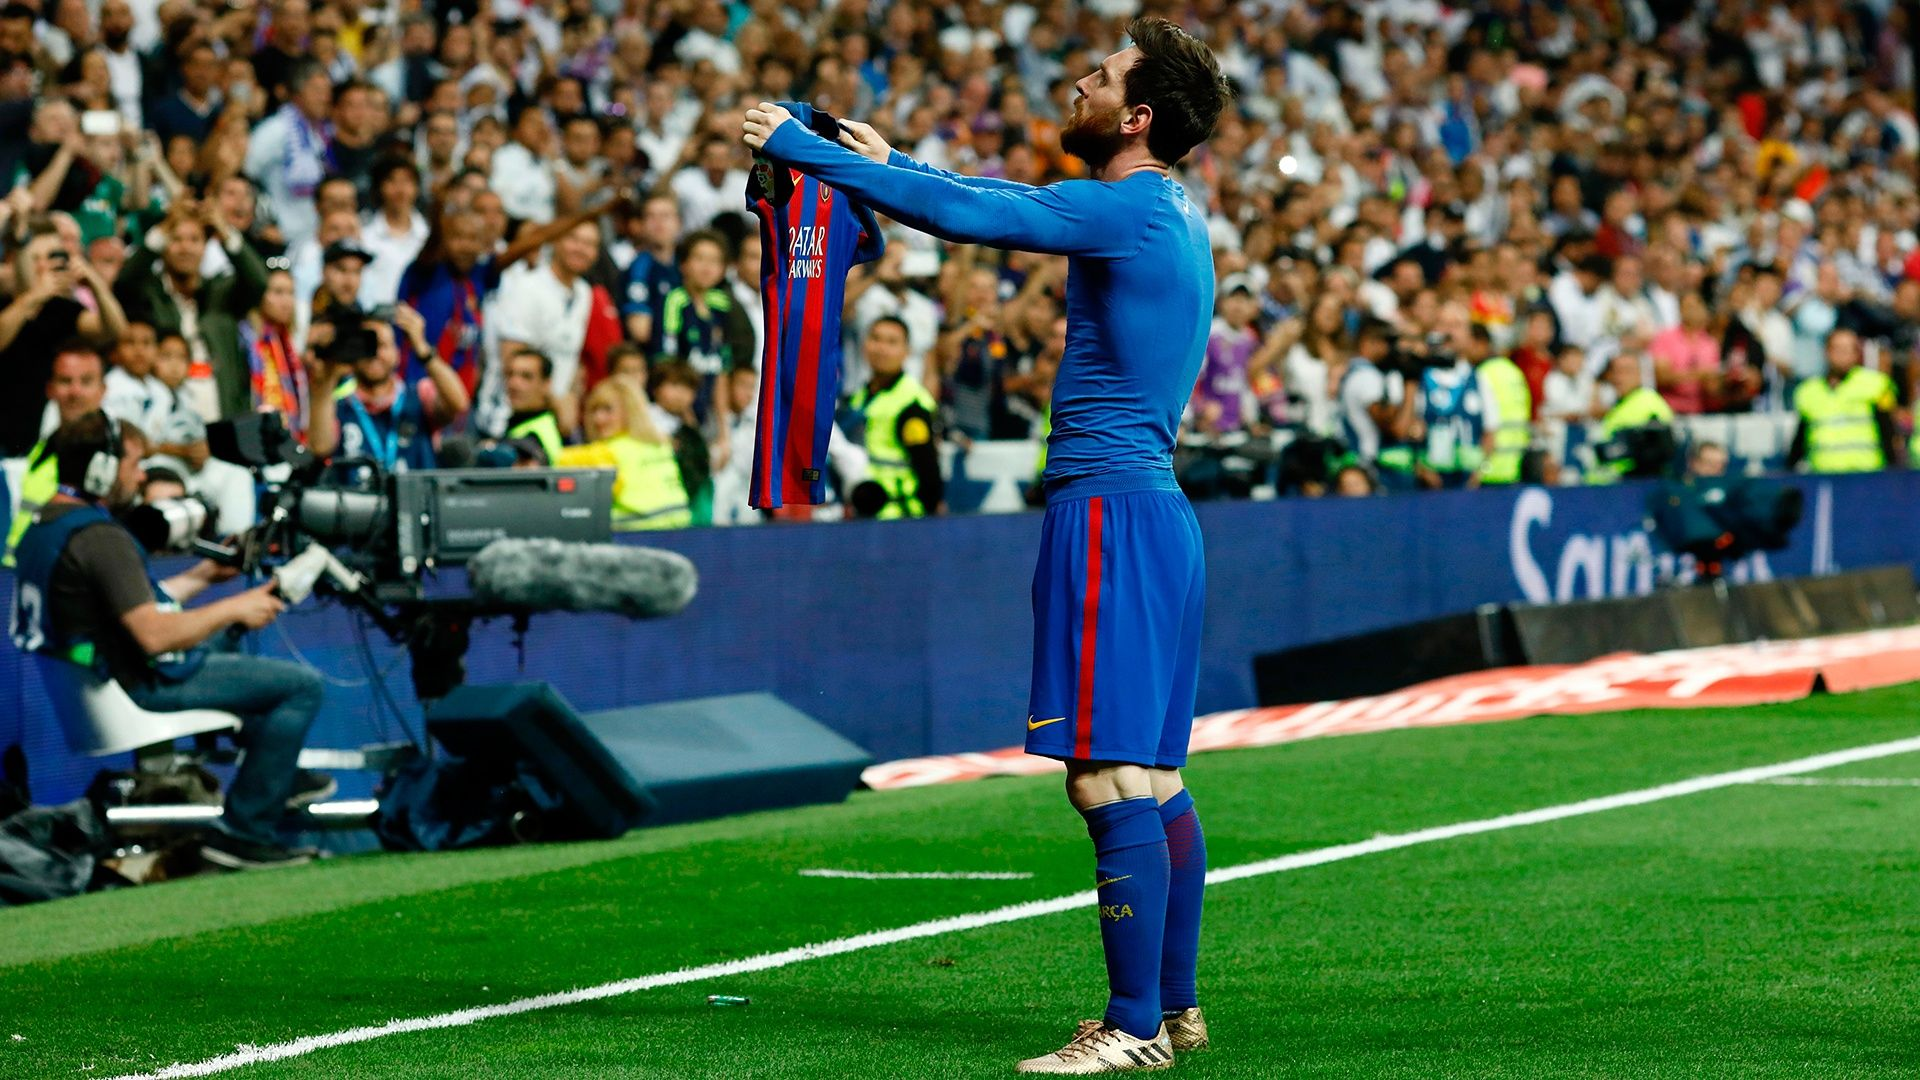 lionel_messi_barcelona_real_madrid_ensey_1920x1080.jpg